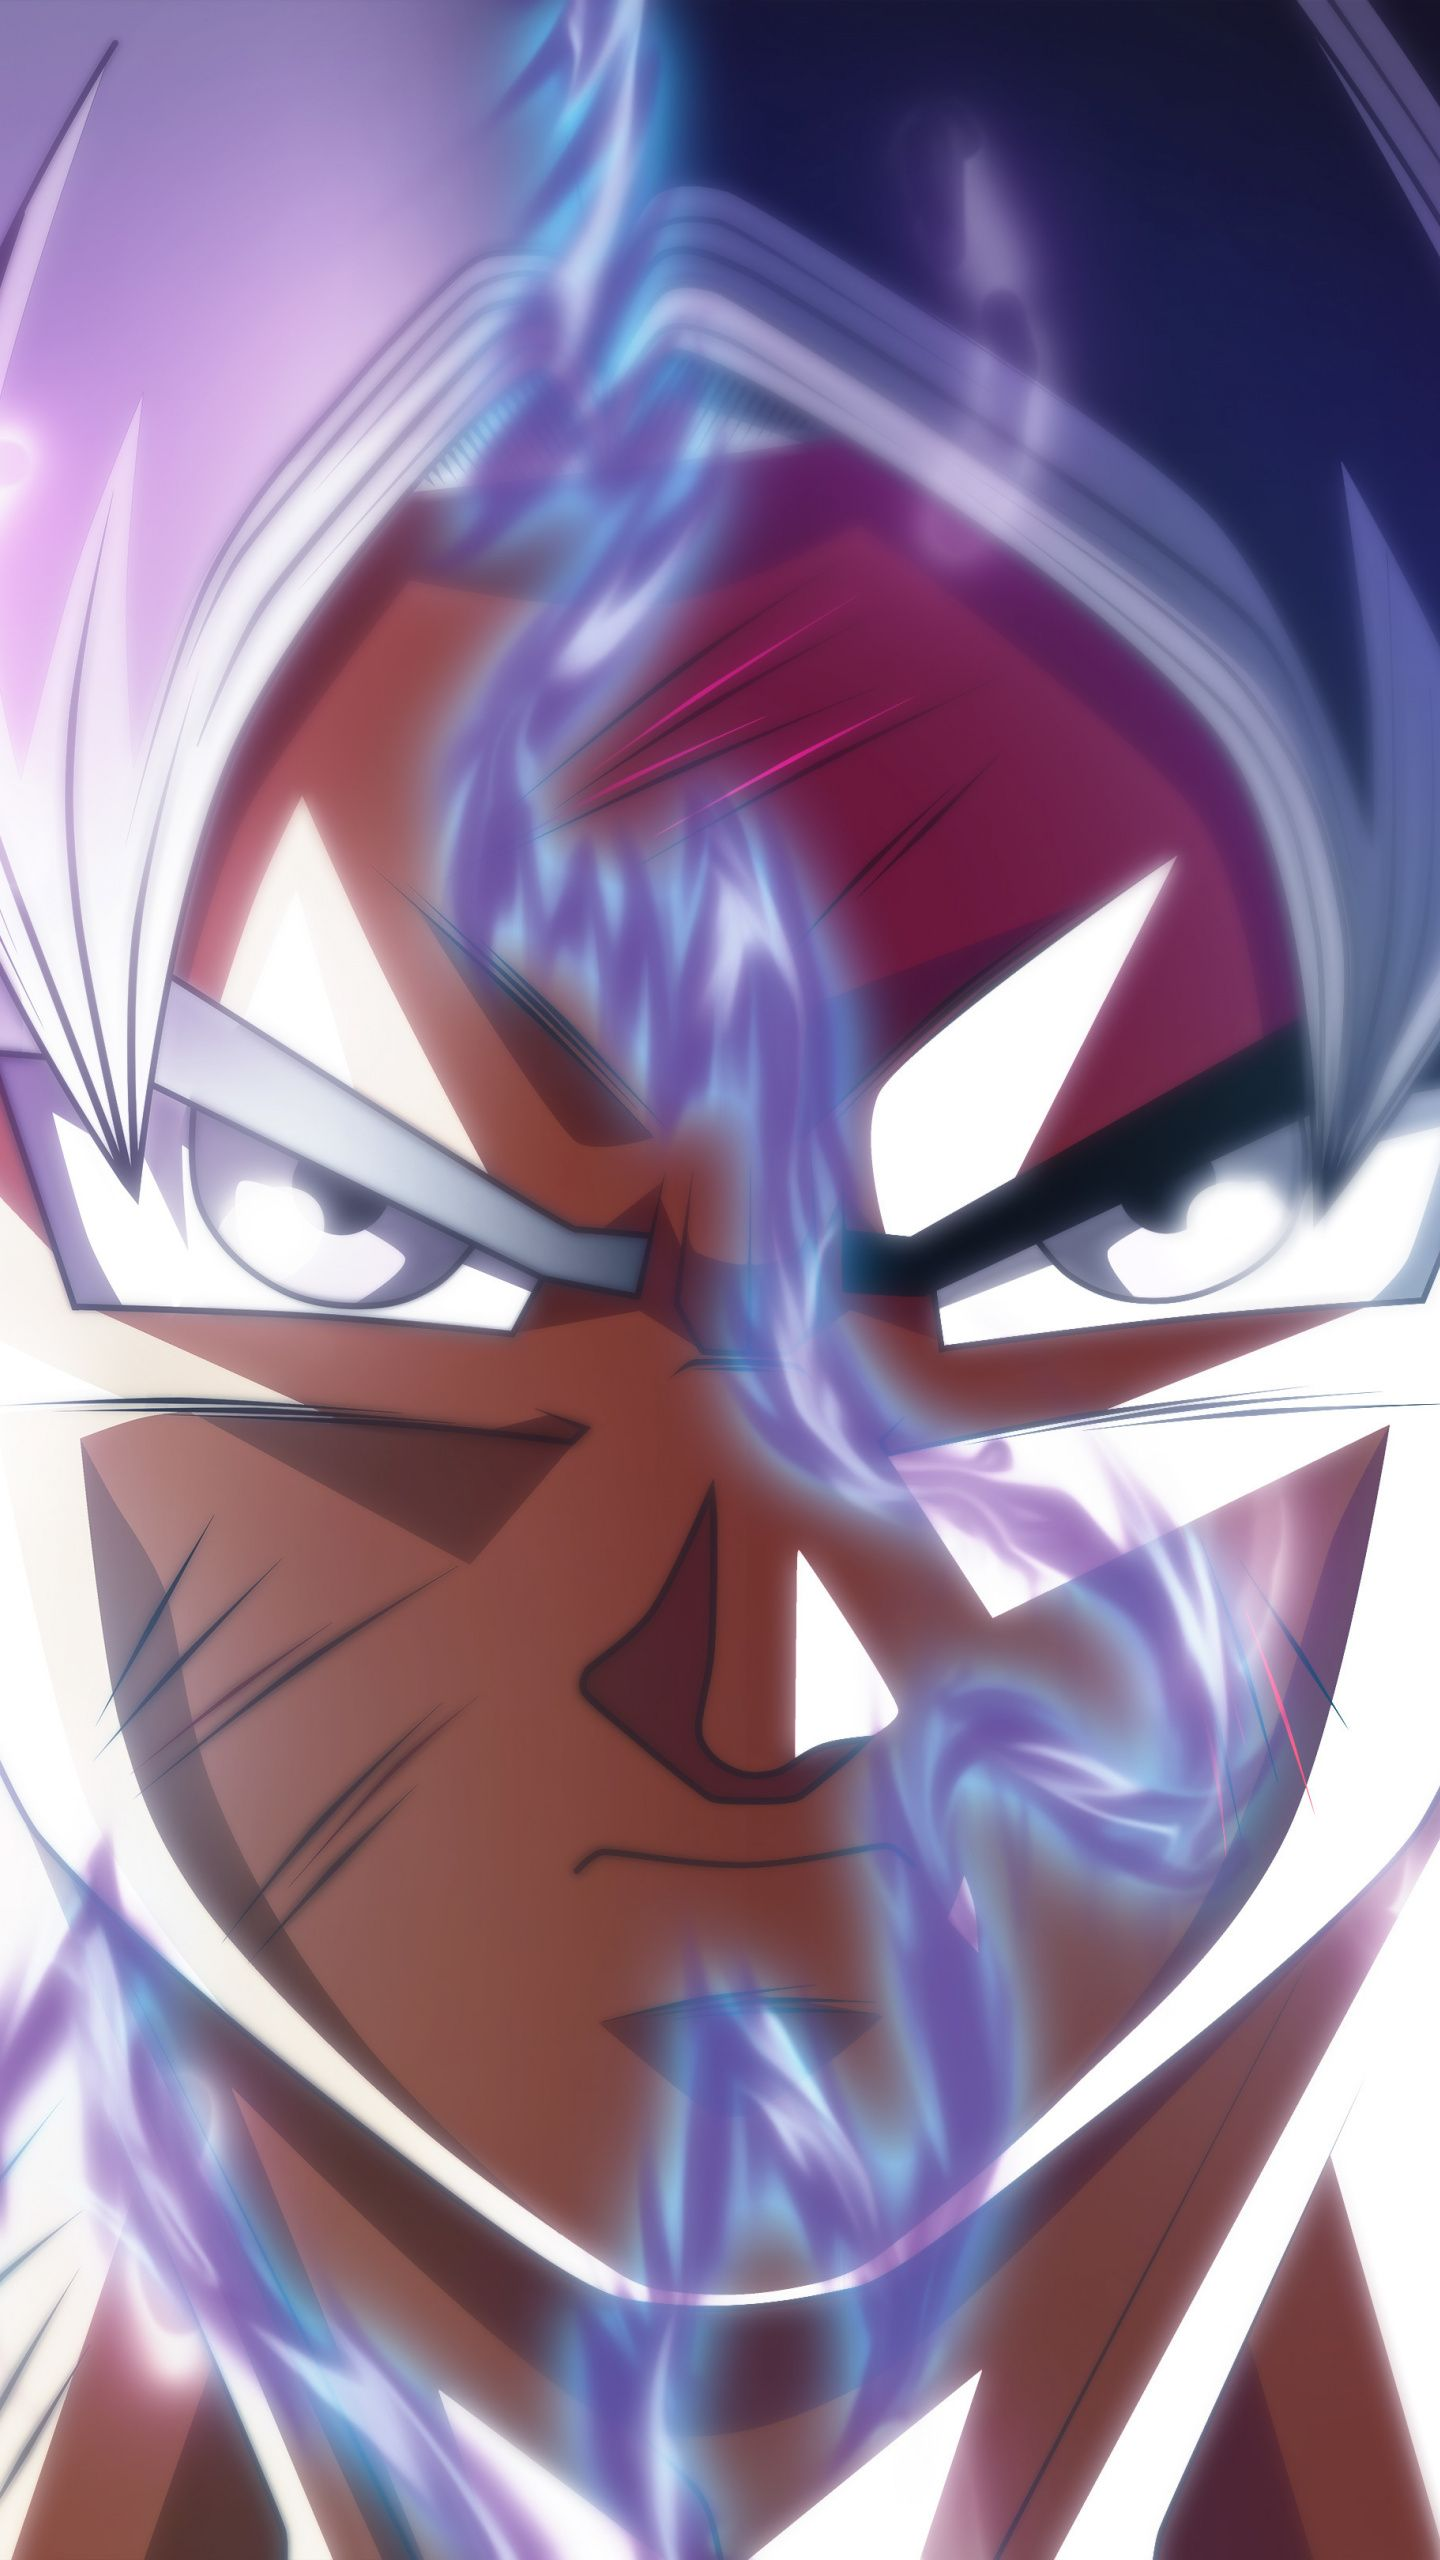 Download 1440x2560 Wallpaper Goku Face Off Ultra Instinct Dragon Ball Super 5k Qhd Samsung Gala Anime Dragon Ball Super Dragon Ball Goku Anime Dragon Ball